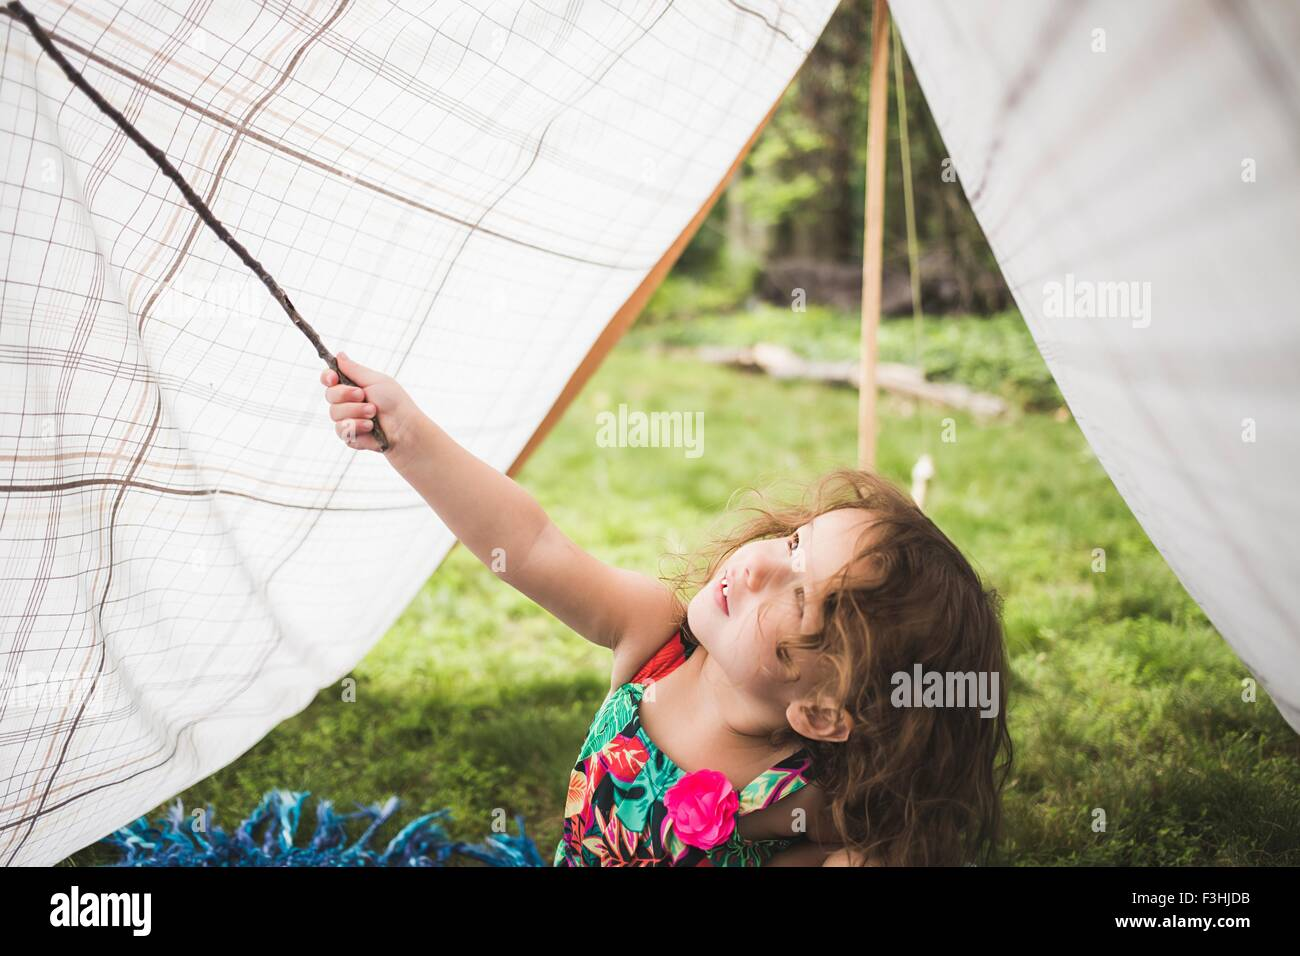 Girl poking homemade garden tent with twig - Stock Image